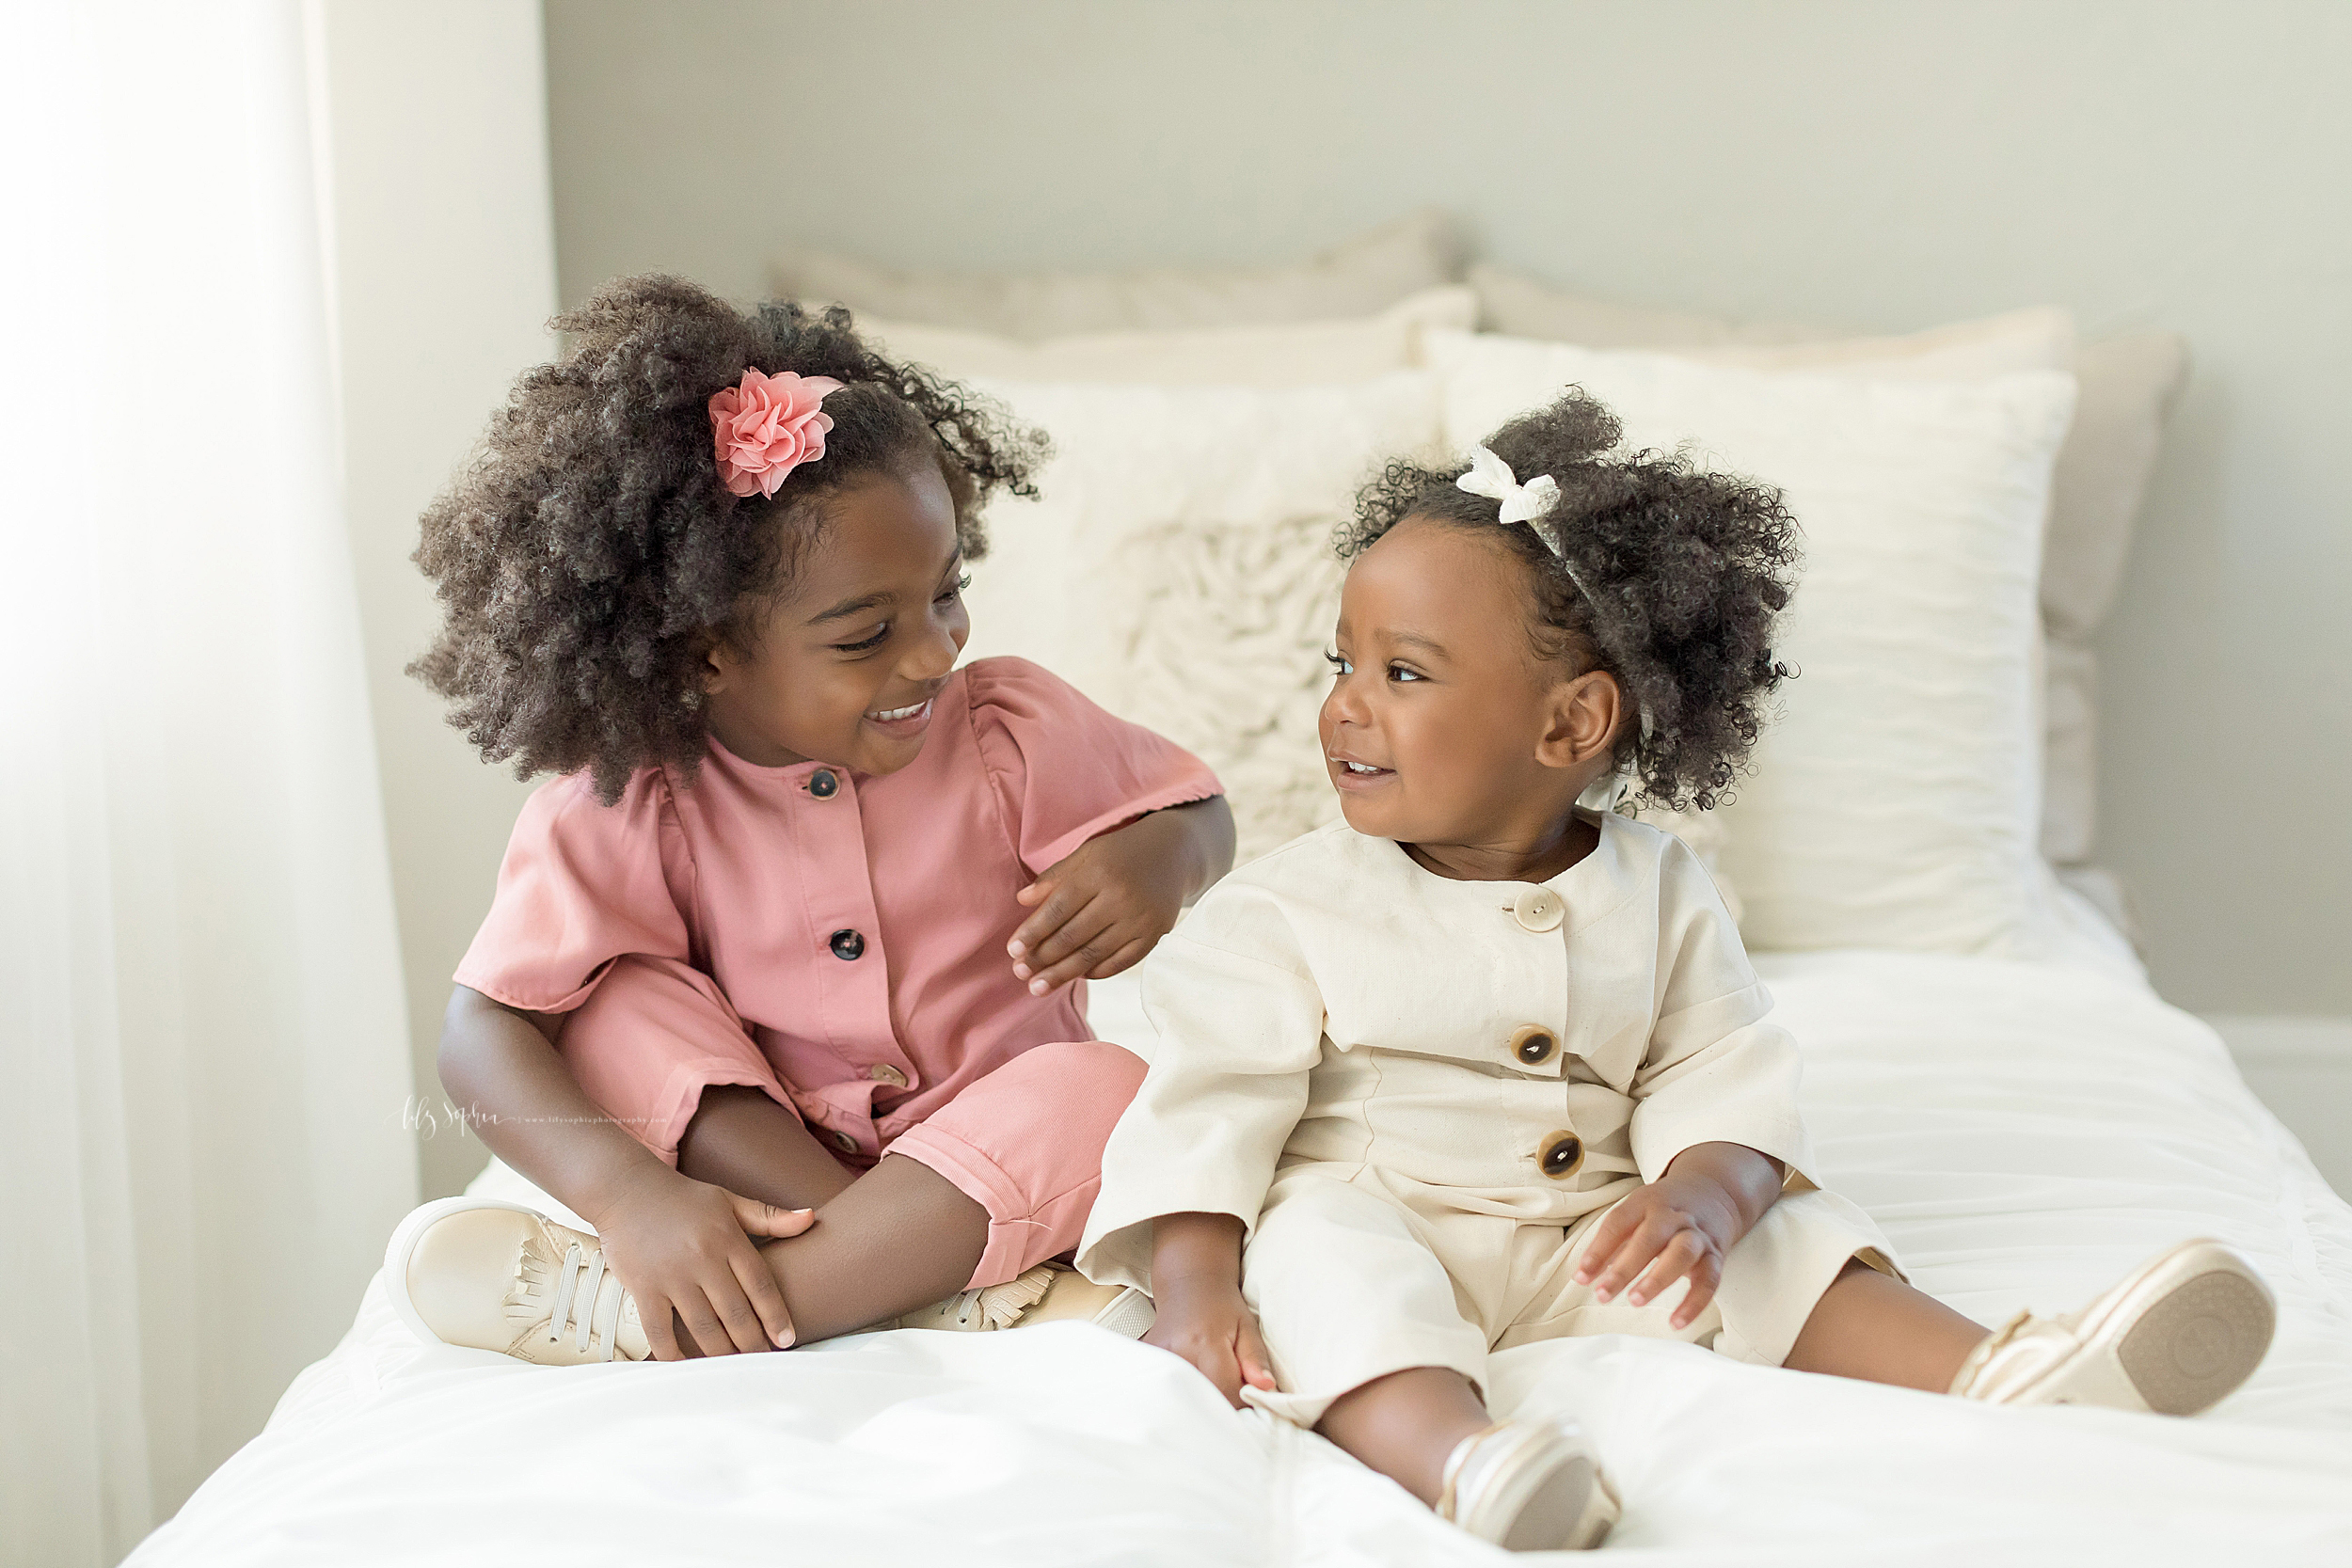 Photograph African American sisters sitting on a bed in an Atlanta studio.  The older sister sports a short sleeved, buttoned down, pink jumpsuit and off- white laced keds. In her hair is a pink rose that holds back her curly black hair. She is smiling at her younger sister who is wearing a long sleeved, buttoned down cream jumpsuit with a bow headband in her hair.